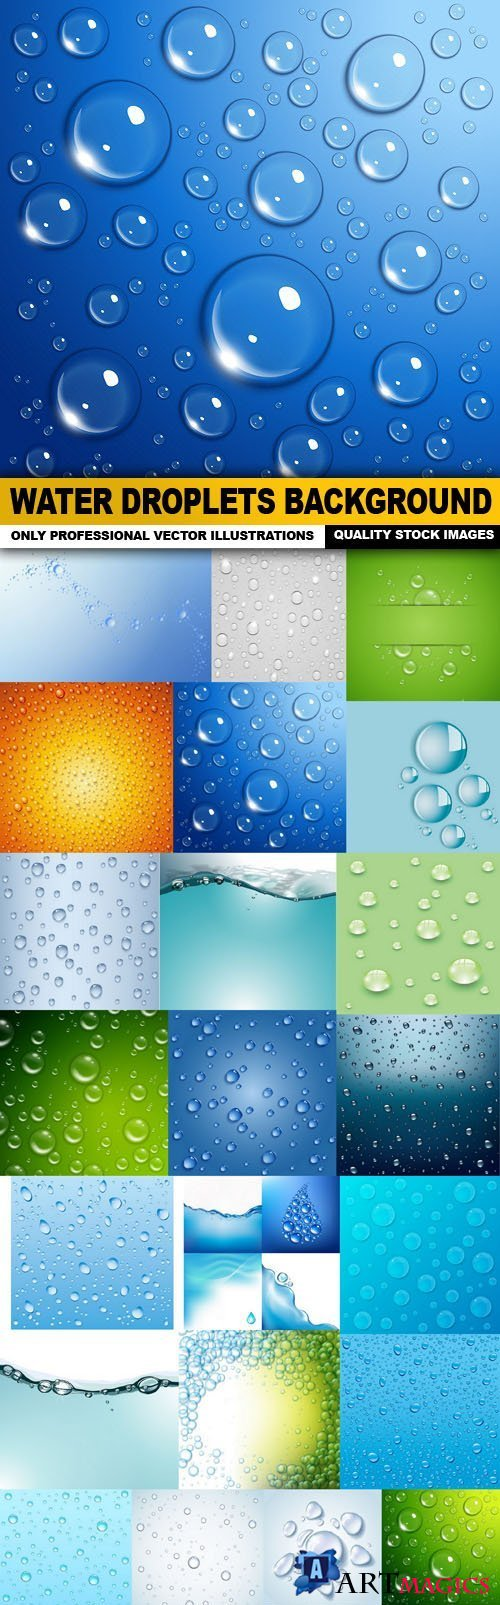 Water Droplets Background - 25 Vector